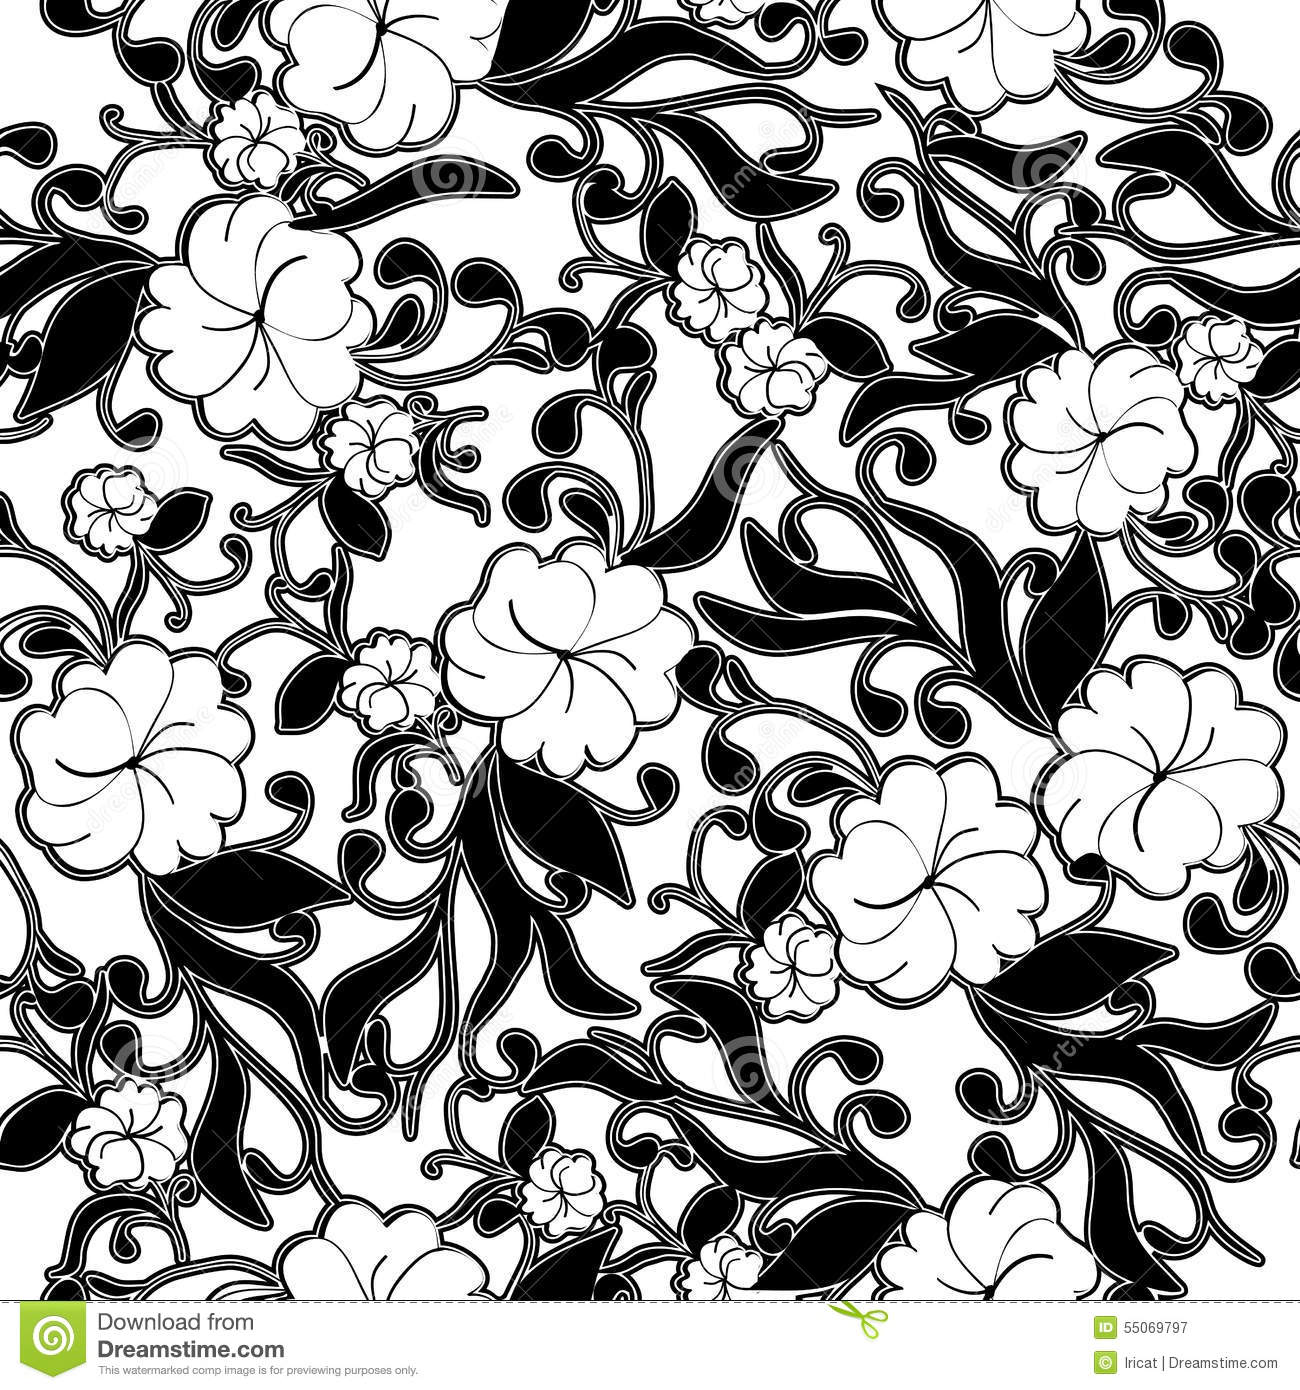 Black And White Abstract Floral Background. Monochrome